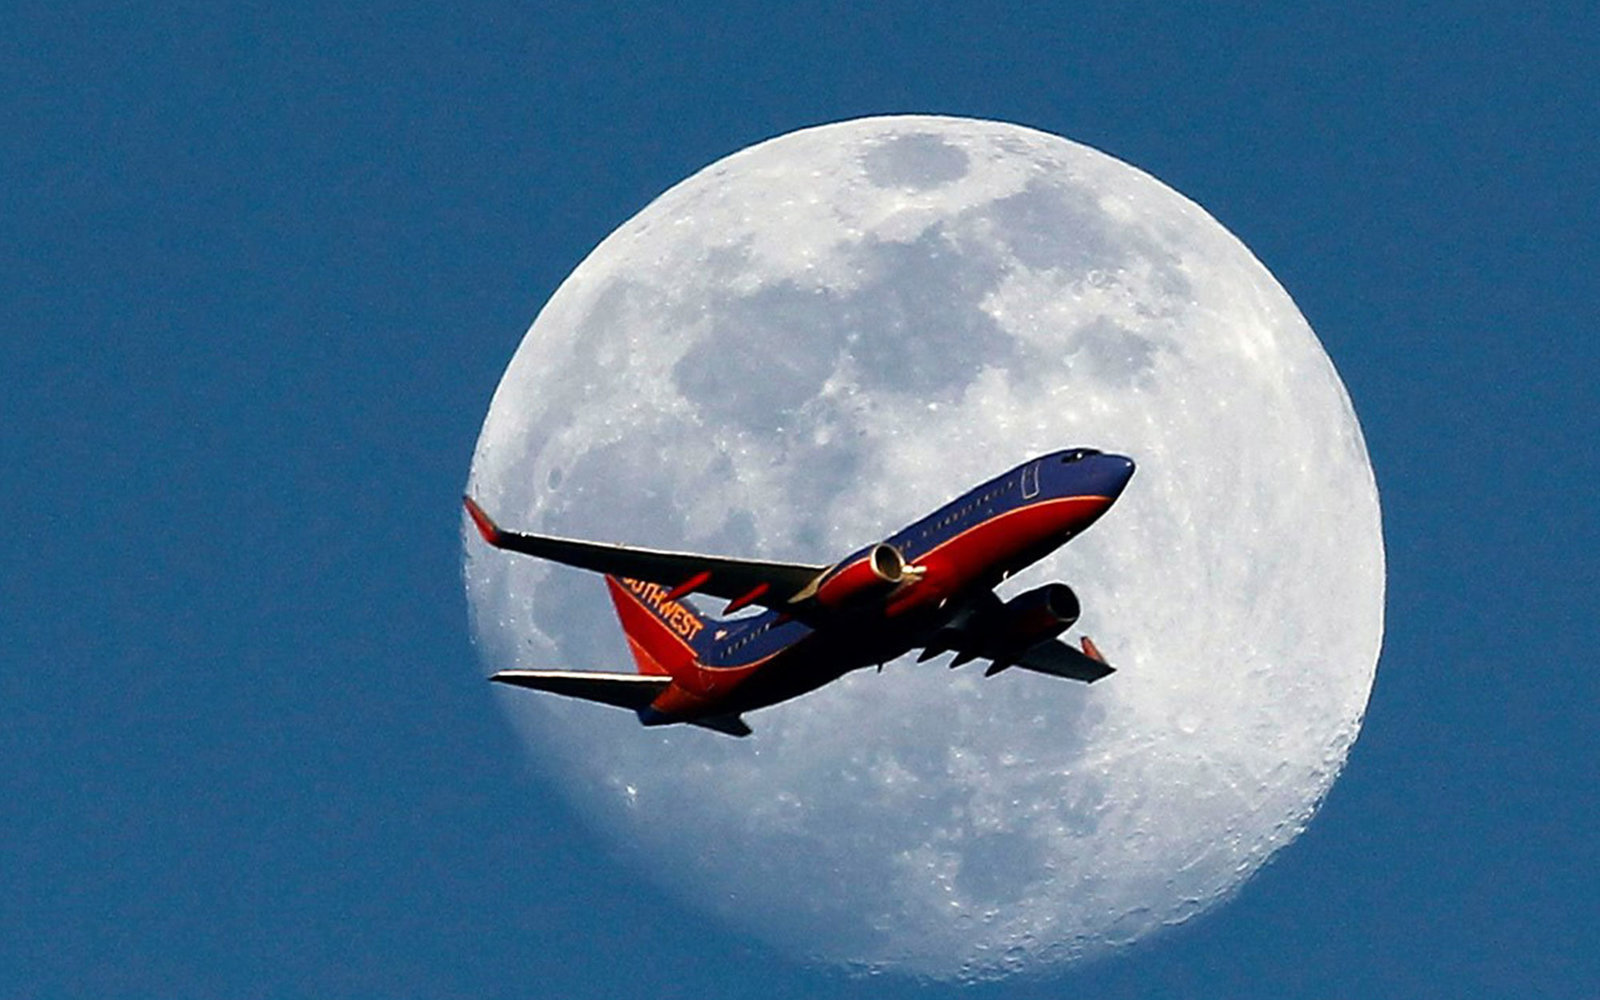 Photographers Capture Images of Airplanes Against the Full Moon